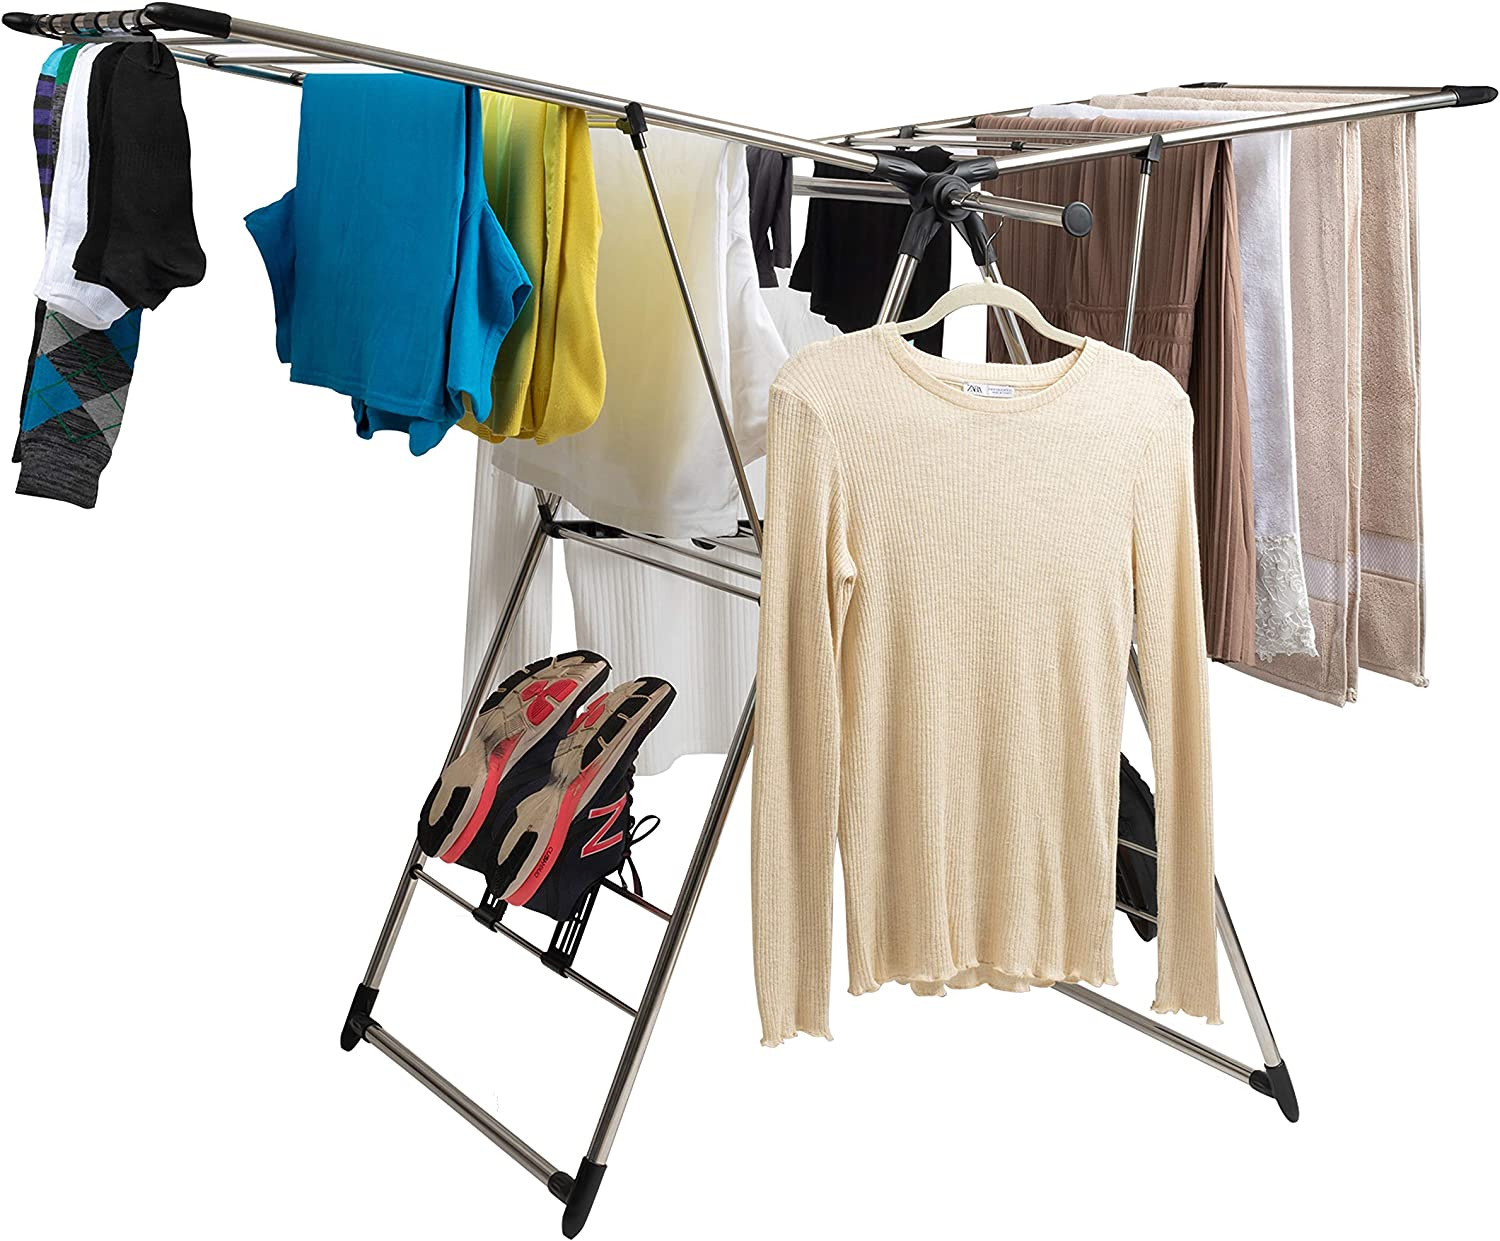 Baflan Stainless Steel Clothes Drying Rack - Laundry Rack with Hanging Rods, Sock Clips and Shoe Hangers - Adjustable Gullwing and Foldable for Easy Storage